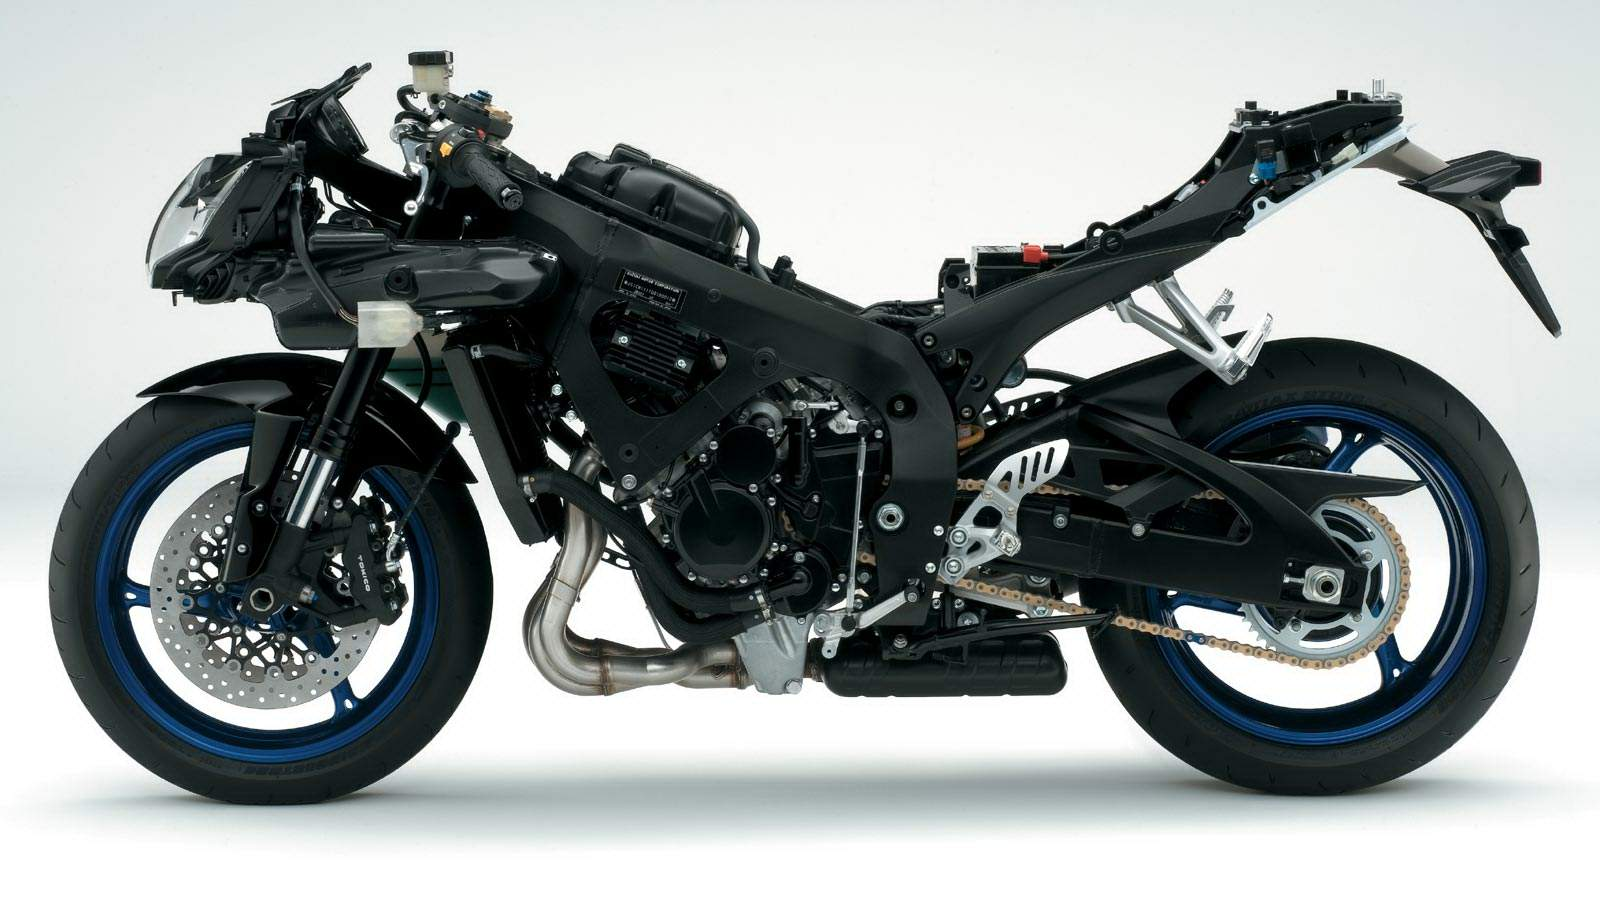 suzuki gsx r 750 specs 2008 2009 2010 autoevolution. Black Bedroom Furniture Sets. Home Design Ideas